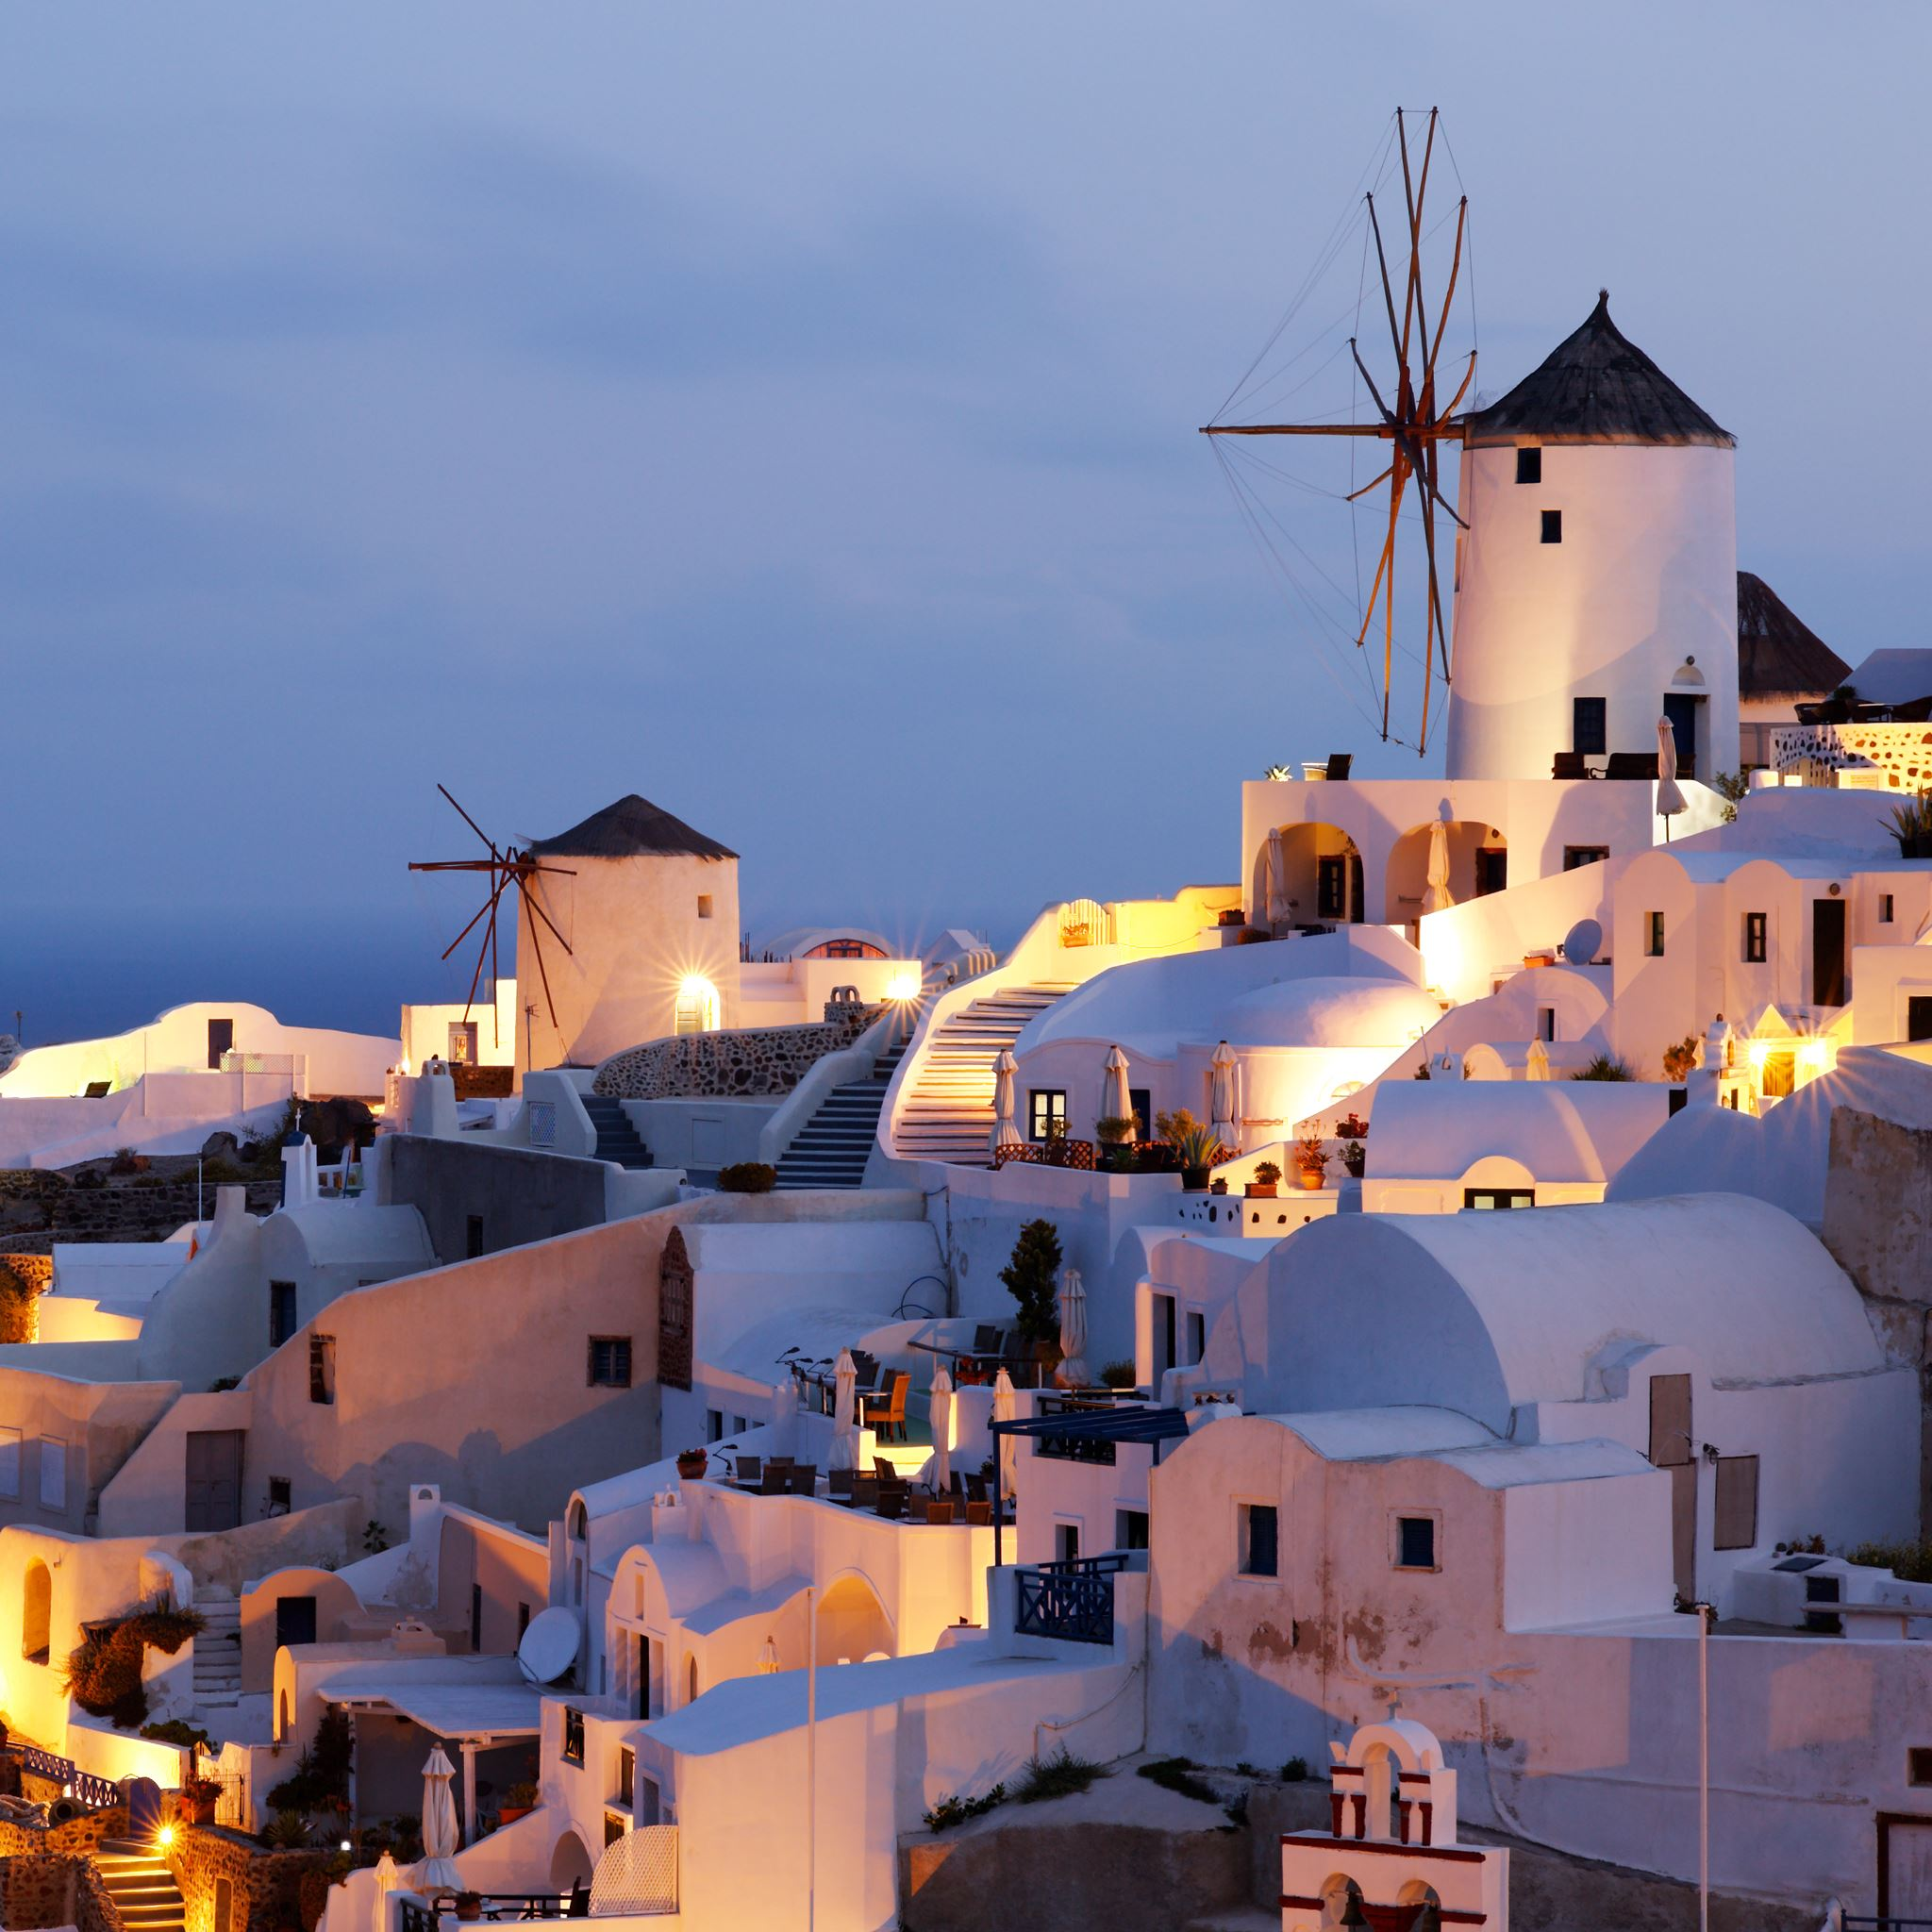 Early Morning in Oia iPad Air wallpaper